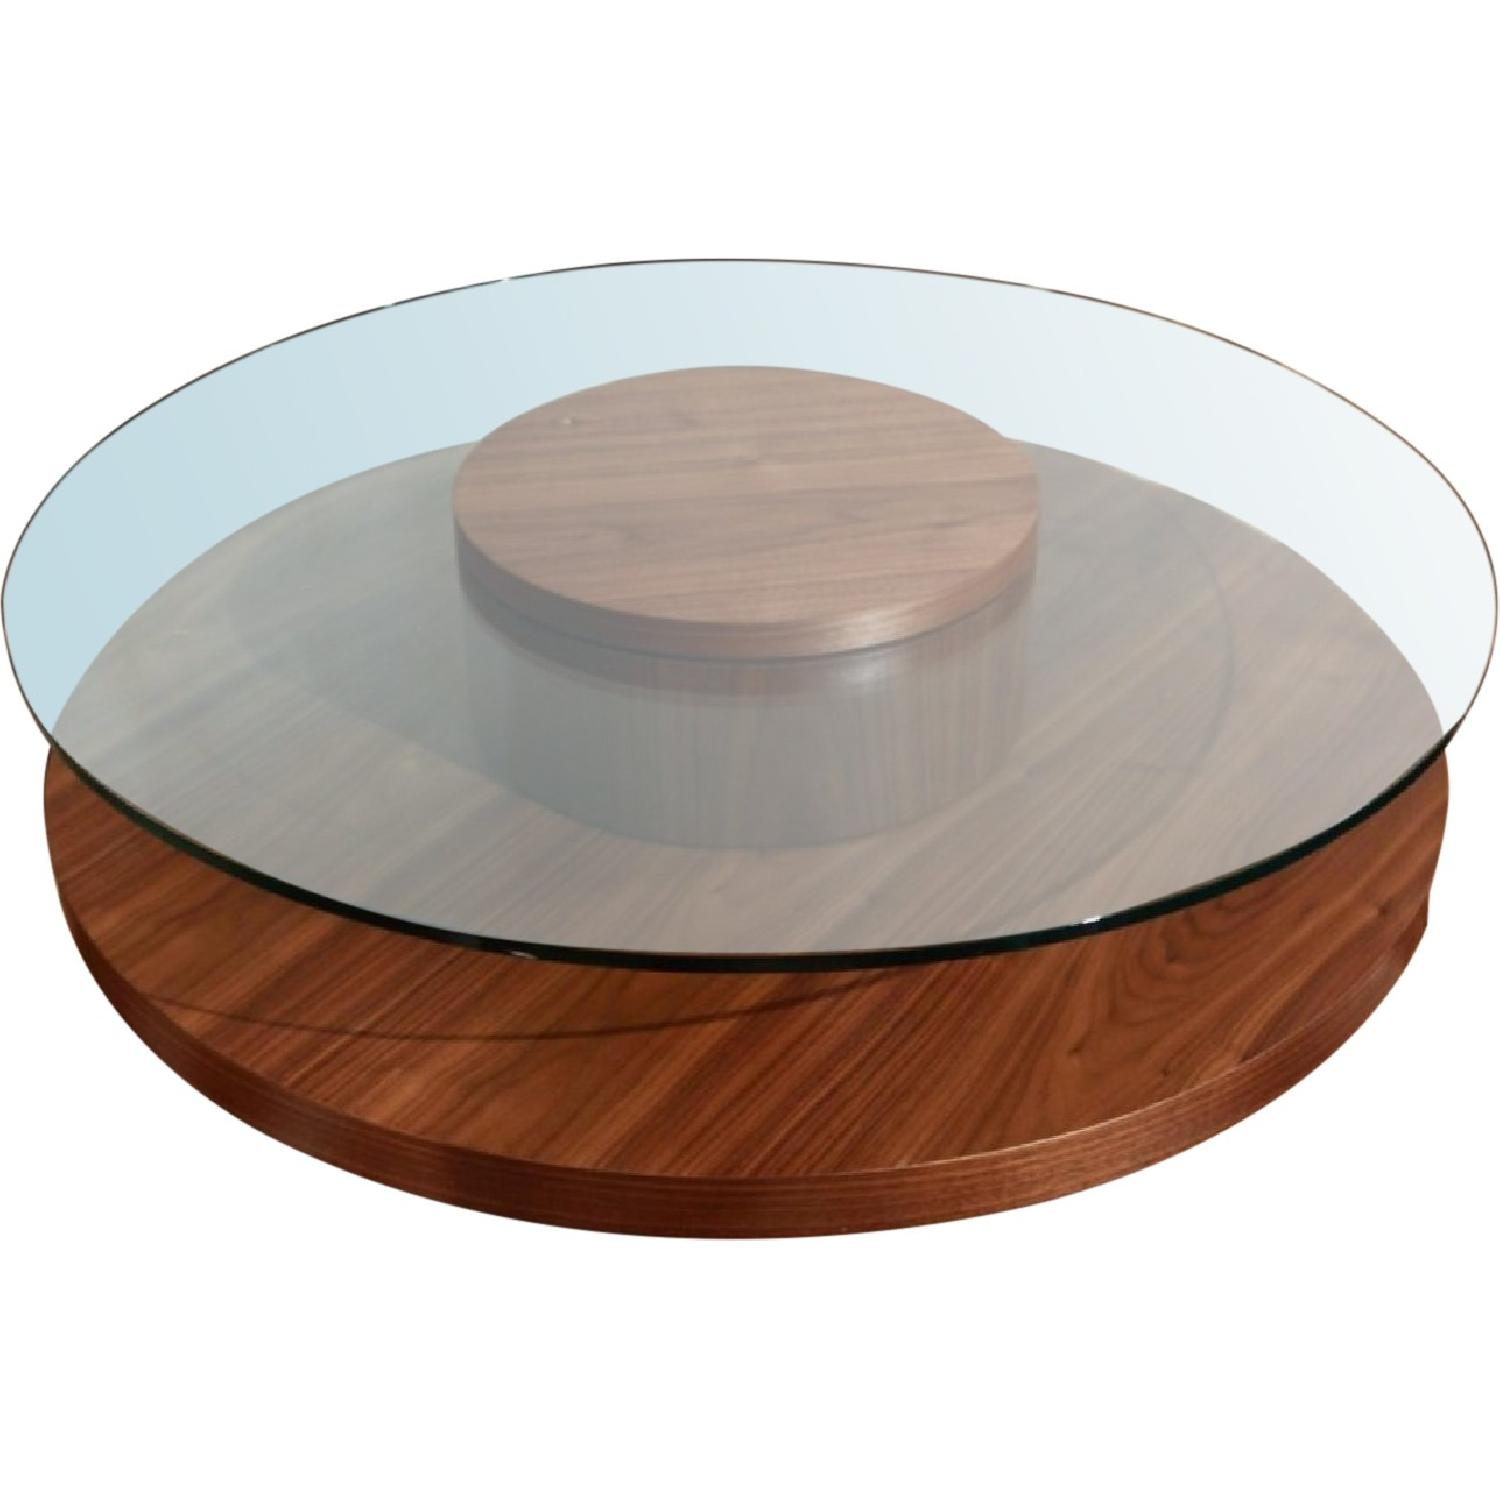 Contemporary Round Coffee Table in Walnut w Rotating  : 1500 1500 frame 0 from www.aptdeco.com size 1500 x 1500 jpeg 89kB